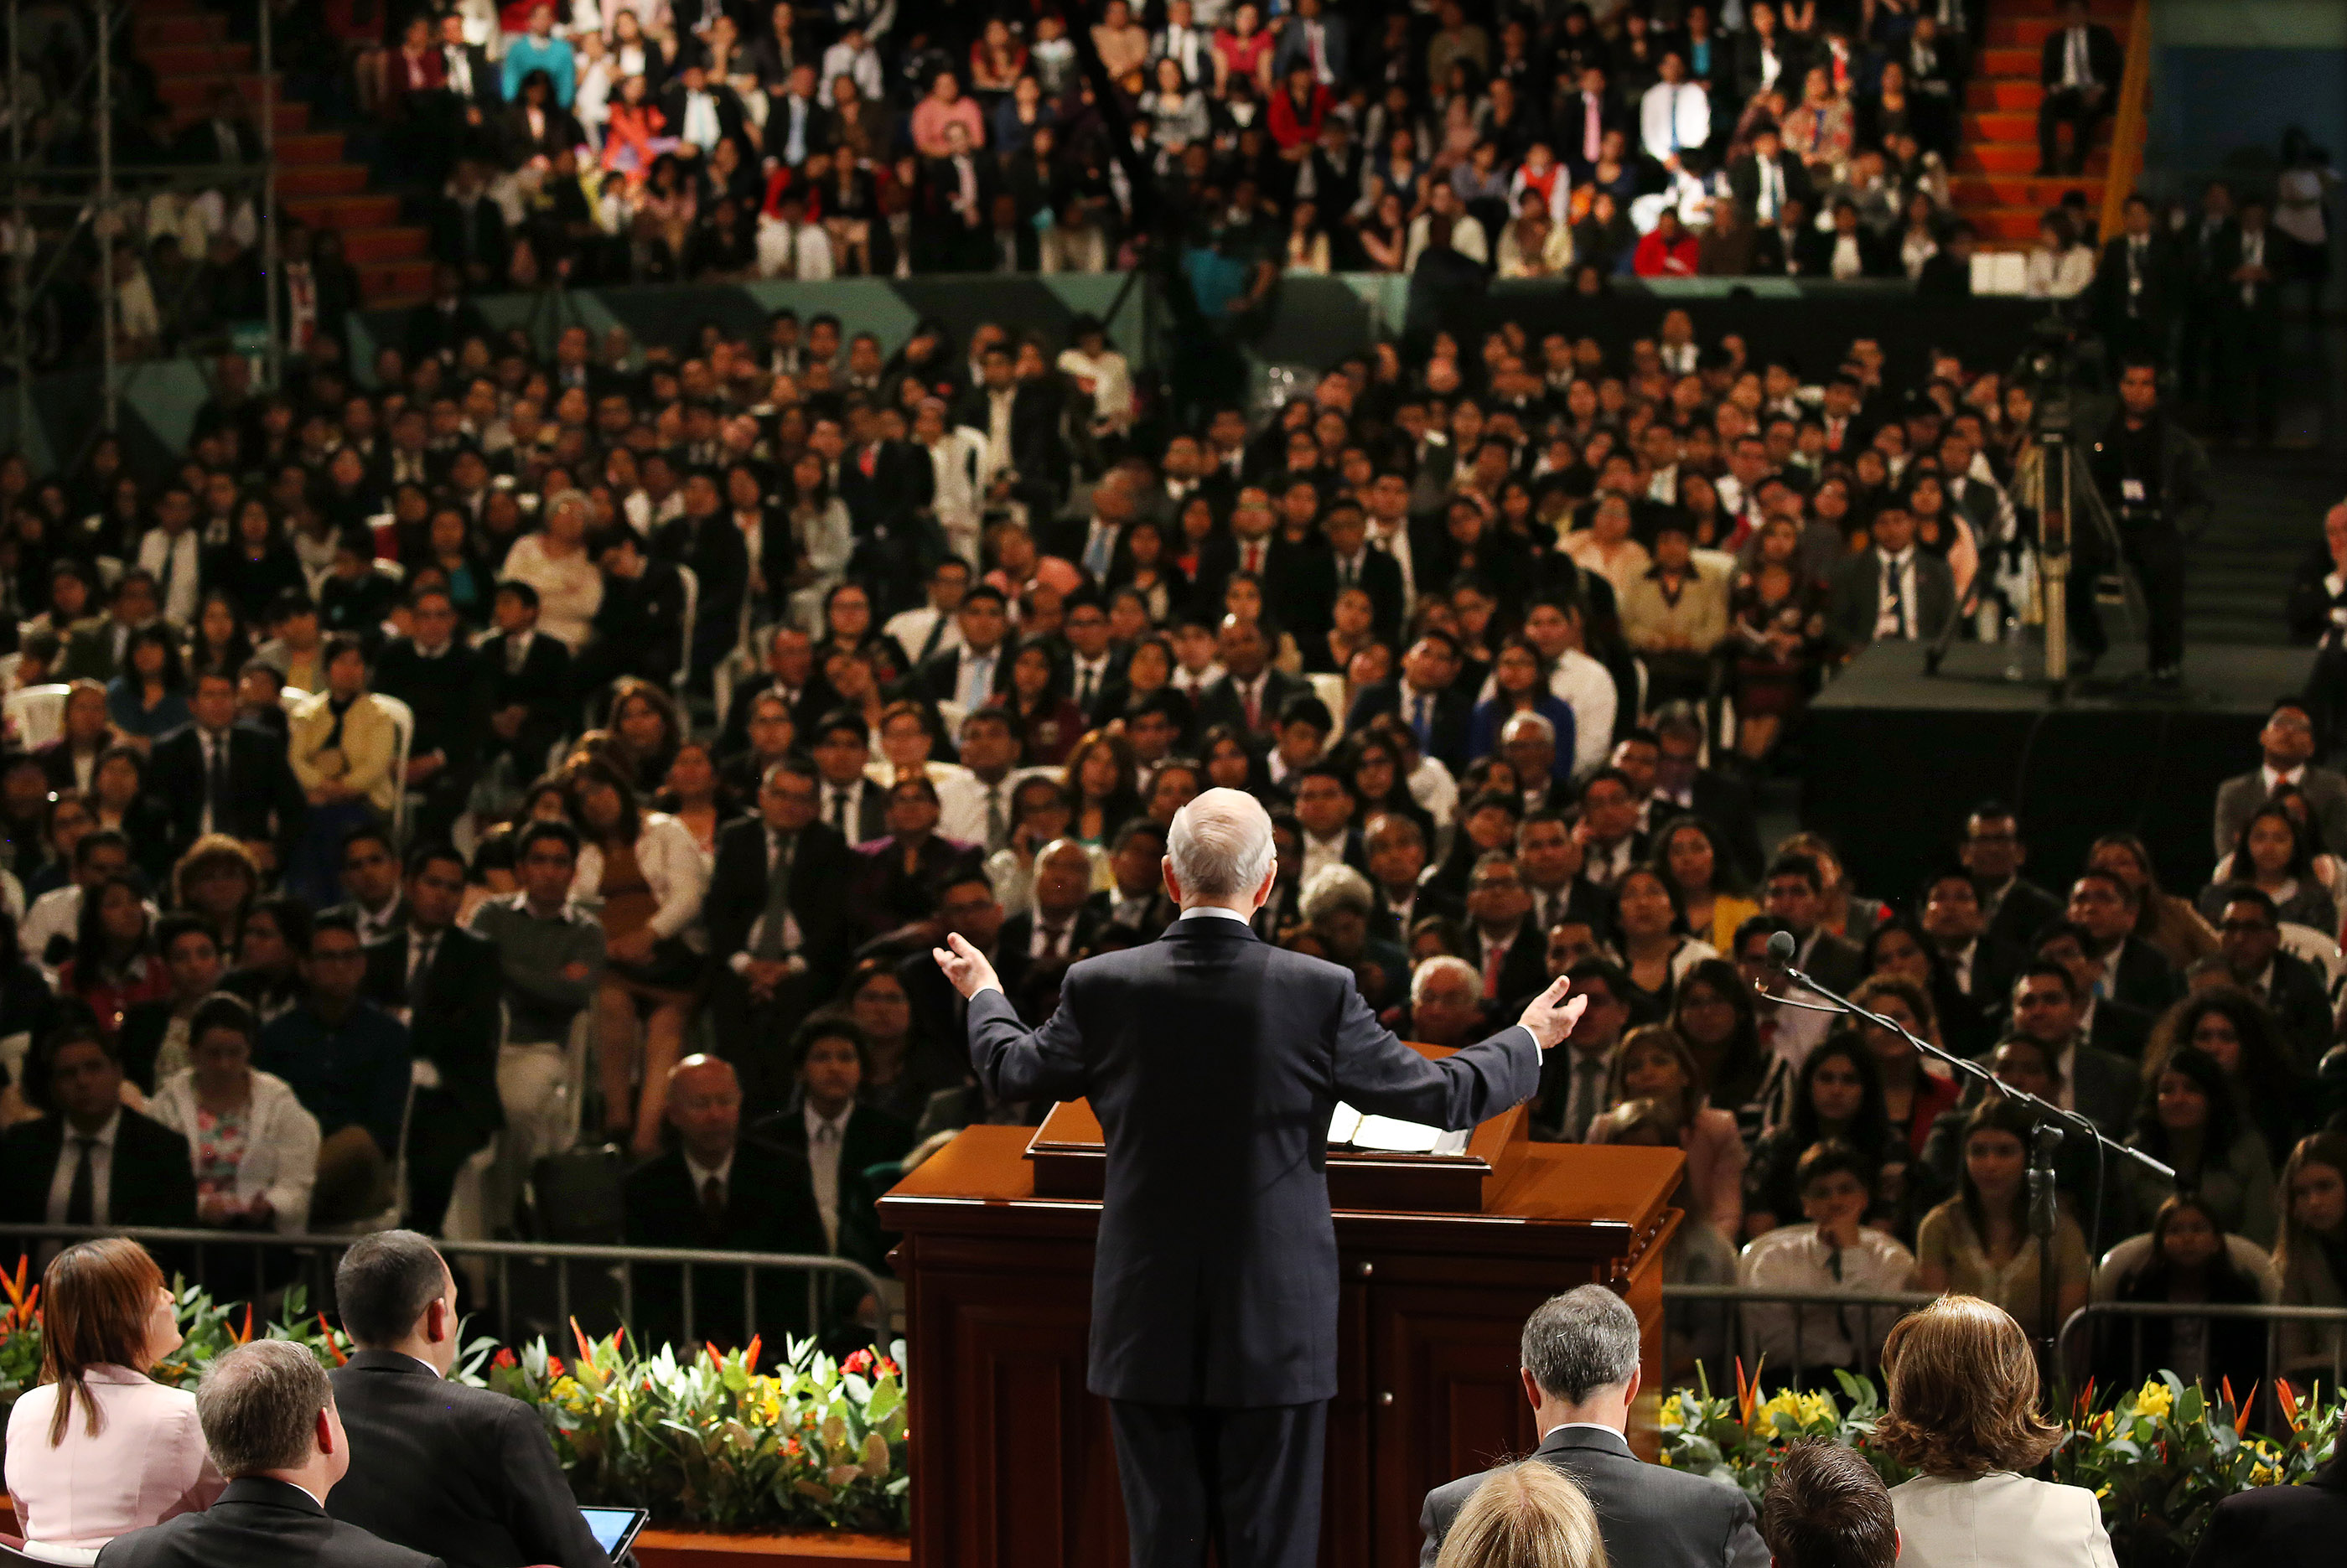 President Russell M. Nelson of The Church of Jesus Christ of Latter-day Saints speaks in Spanish during a devotional in Lima, Peru, on Oct. 20, 2018.